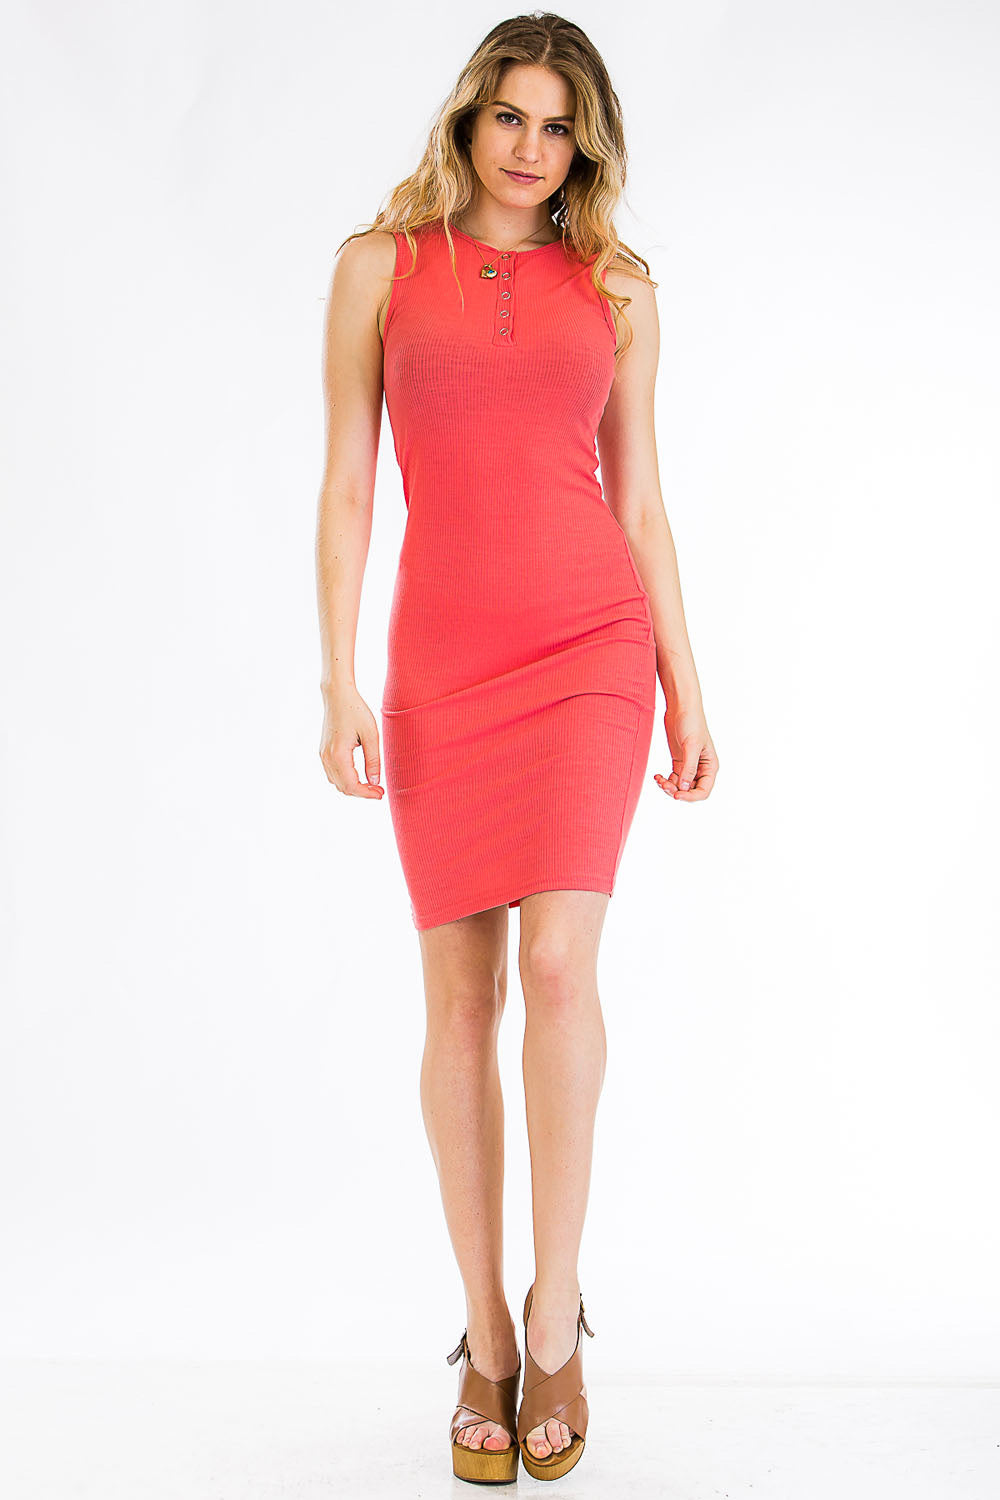 Dress - BD2089 - Capella Apparel